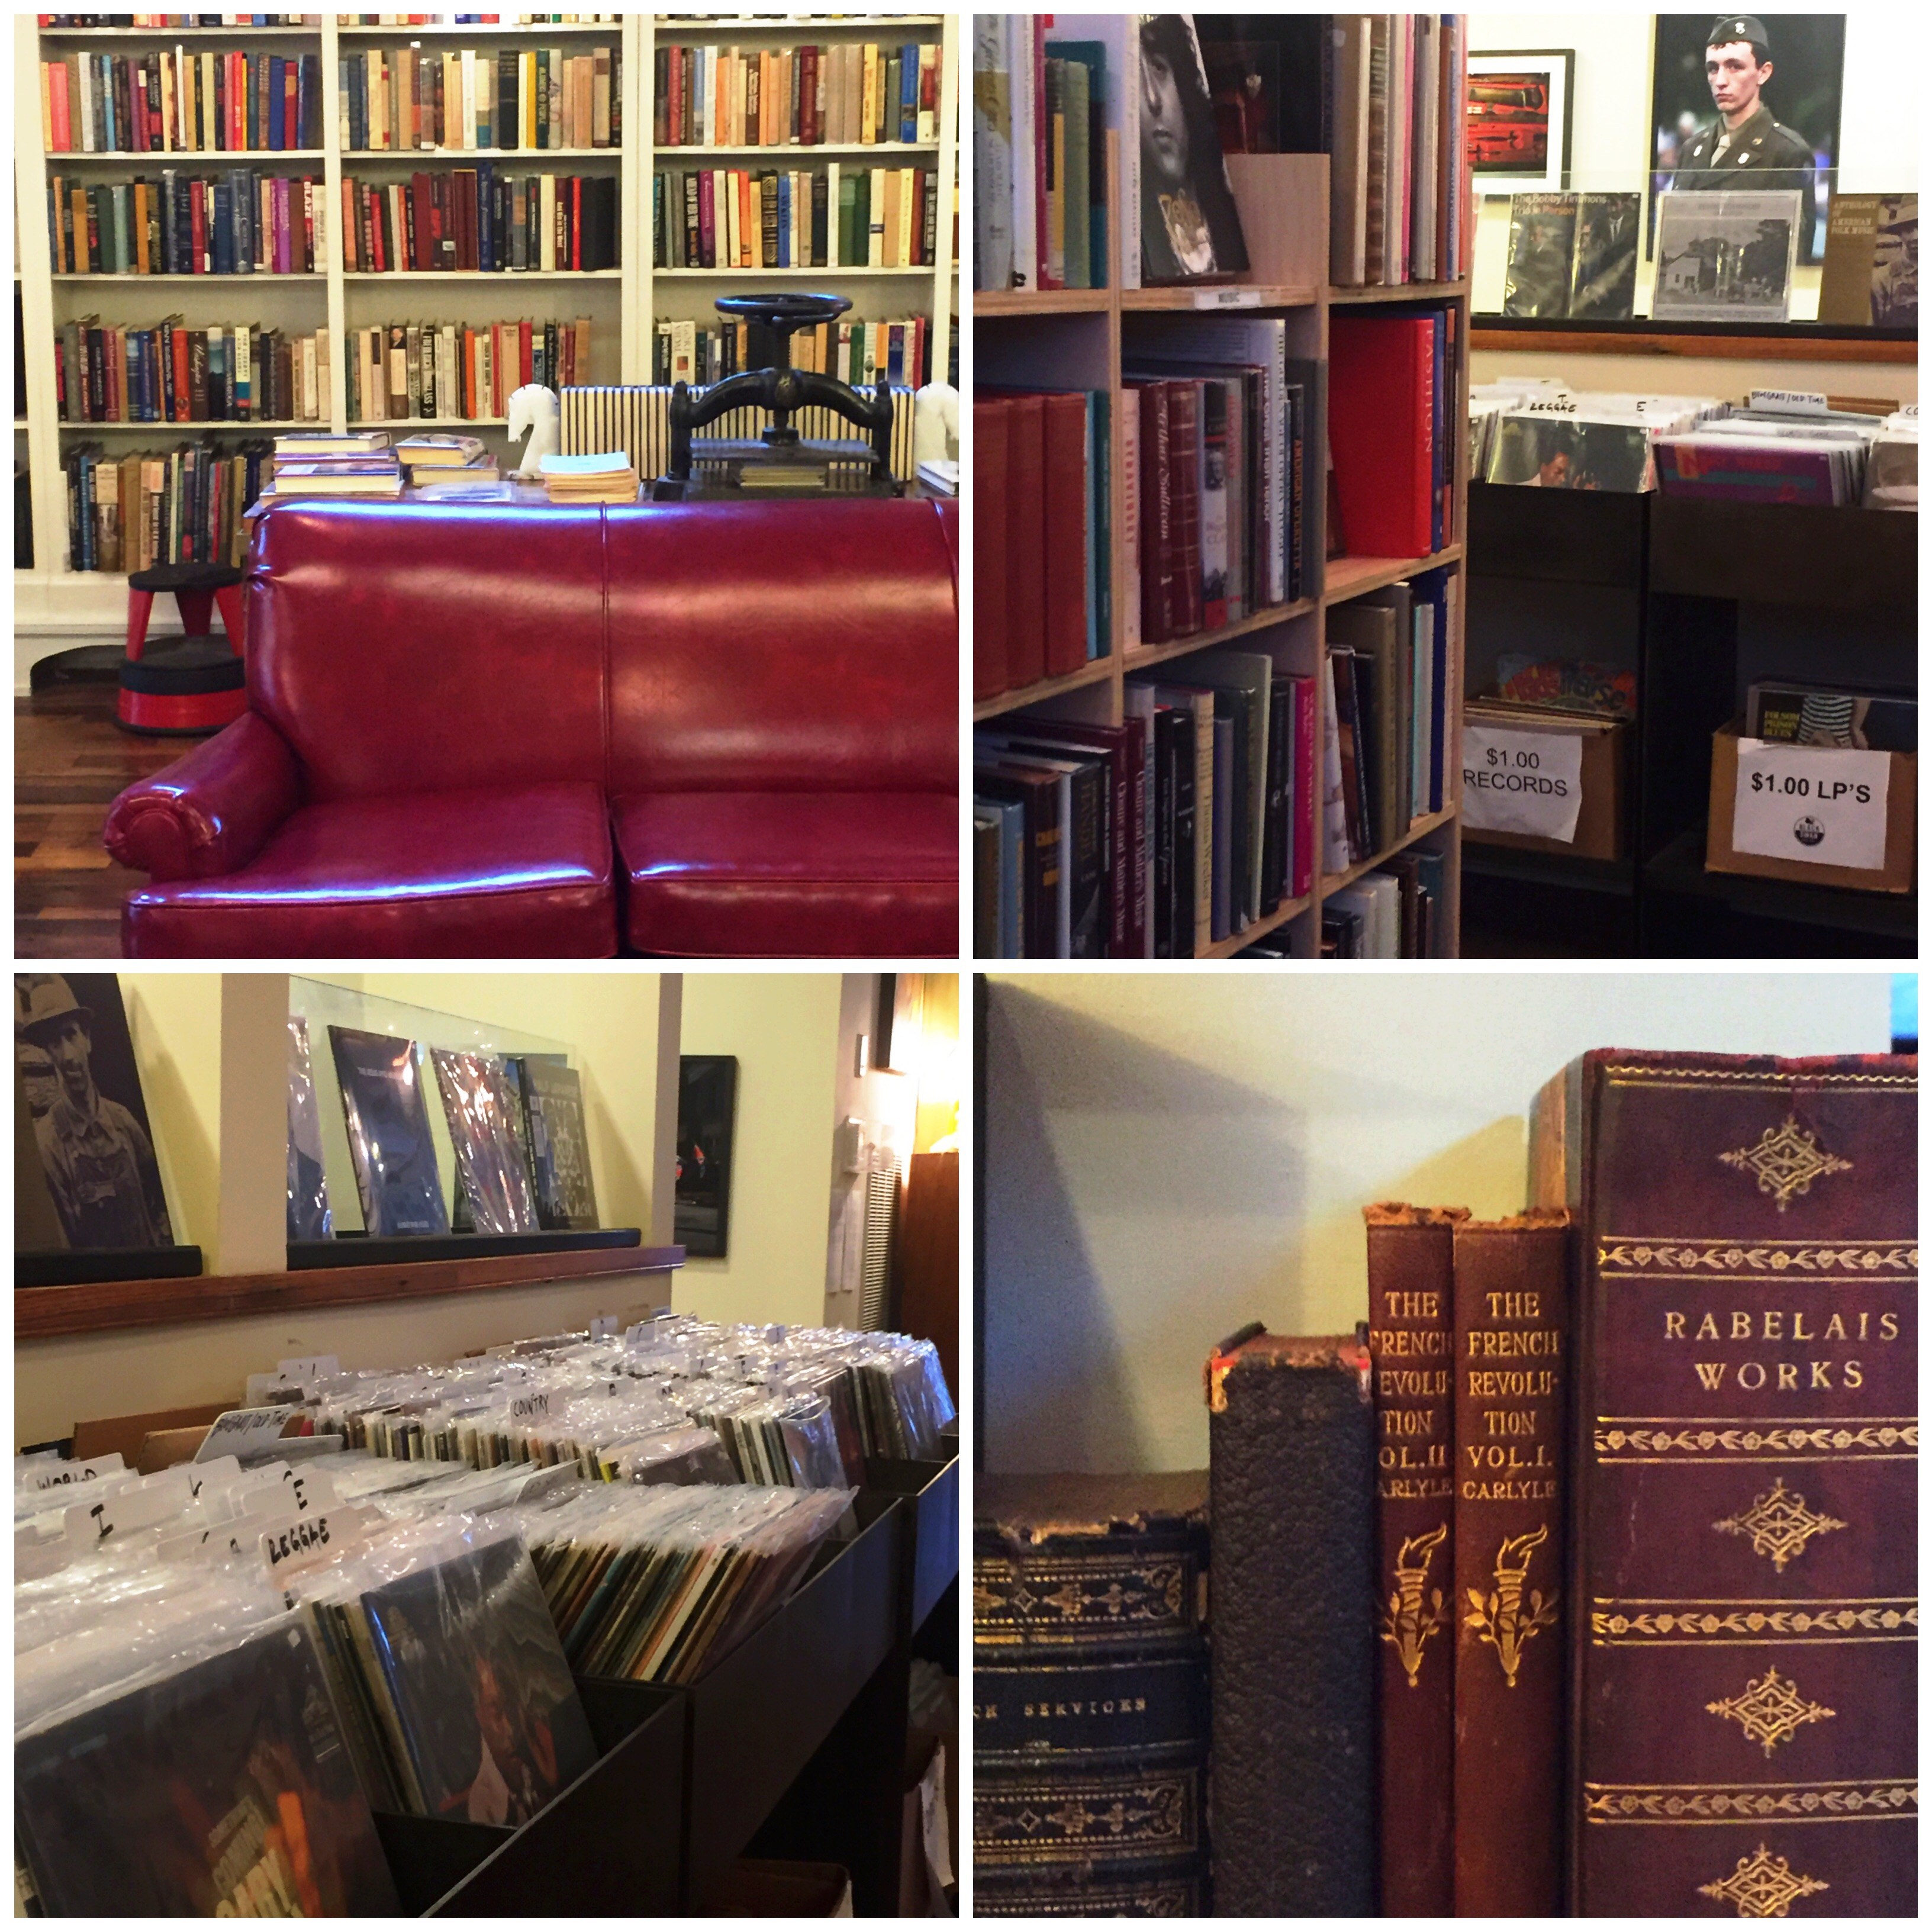 From upper left | Cozy up on the sofa, an aisle of musical biographies, great vinyl selection, rare books